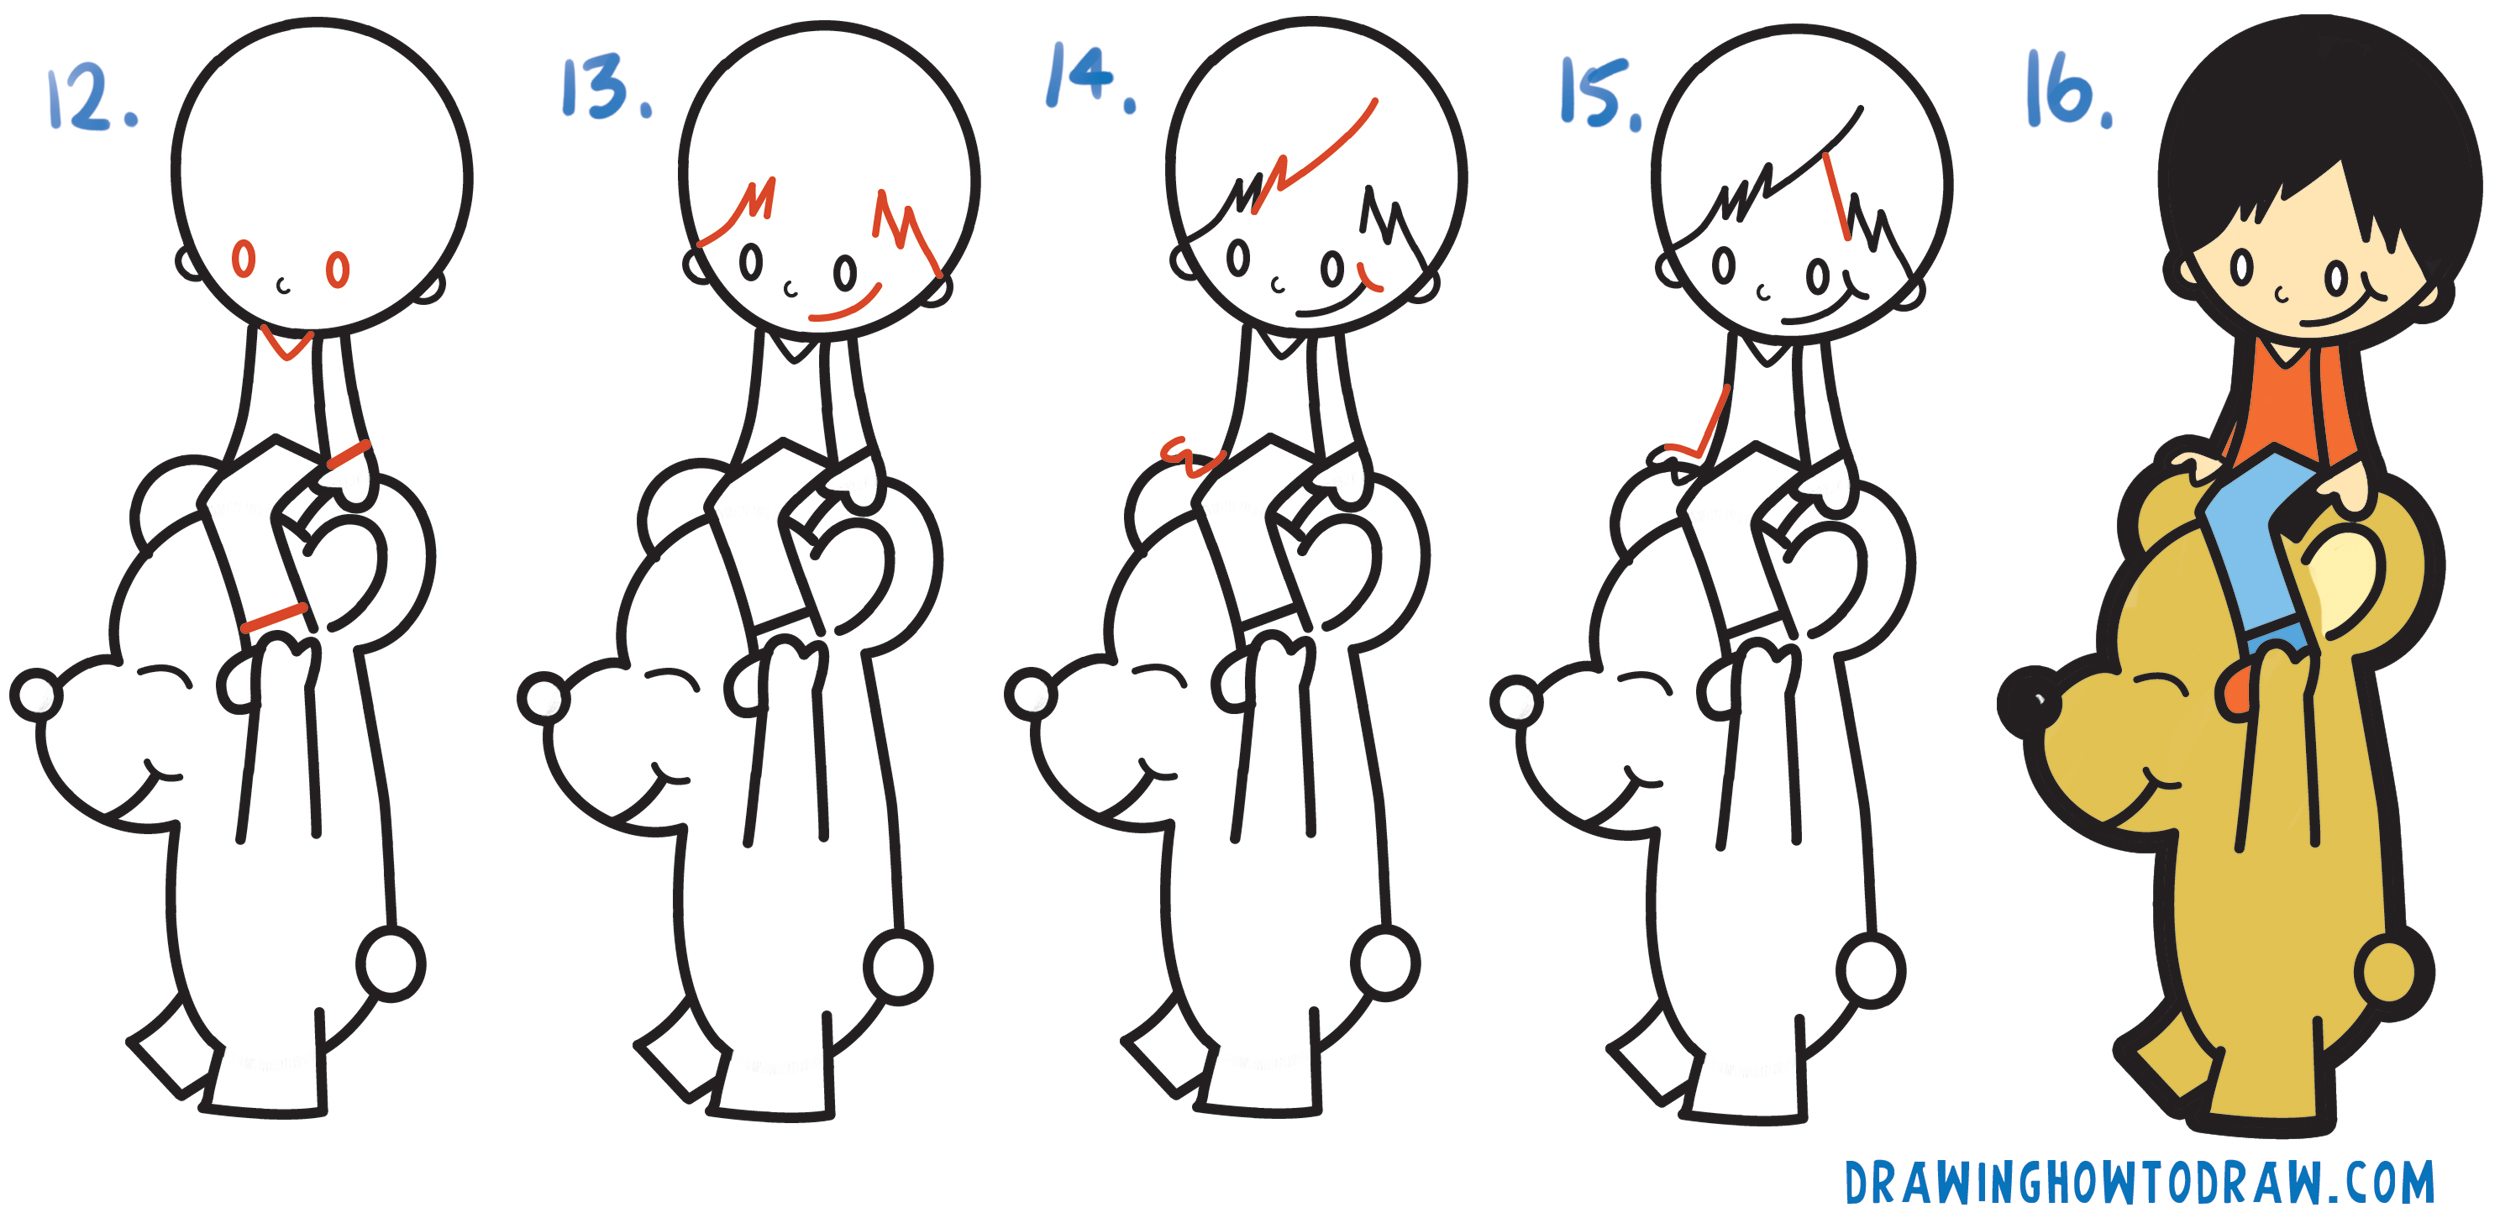 Uncategorized How To Draw A Bear For Kids how to draw a cartoon boy riding bear from question learn mark simple